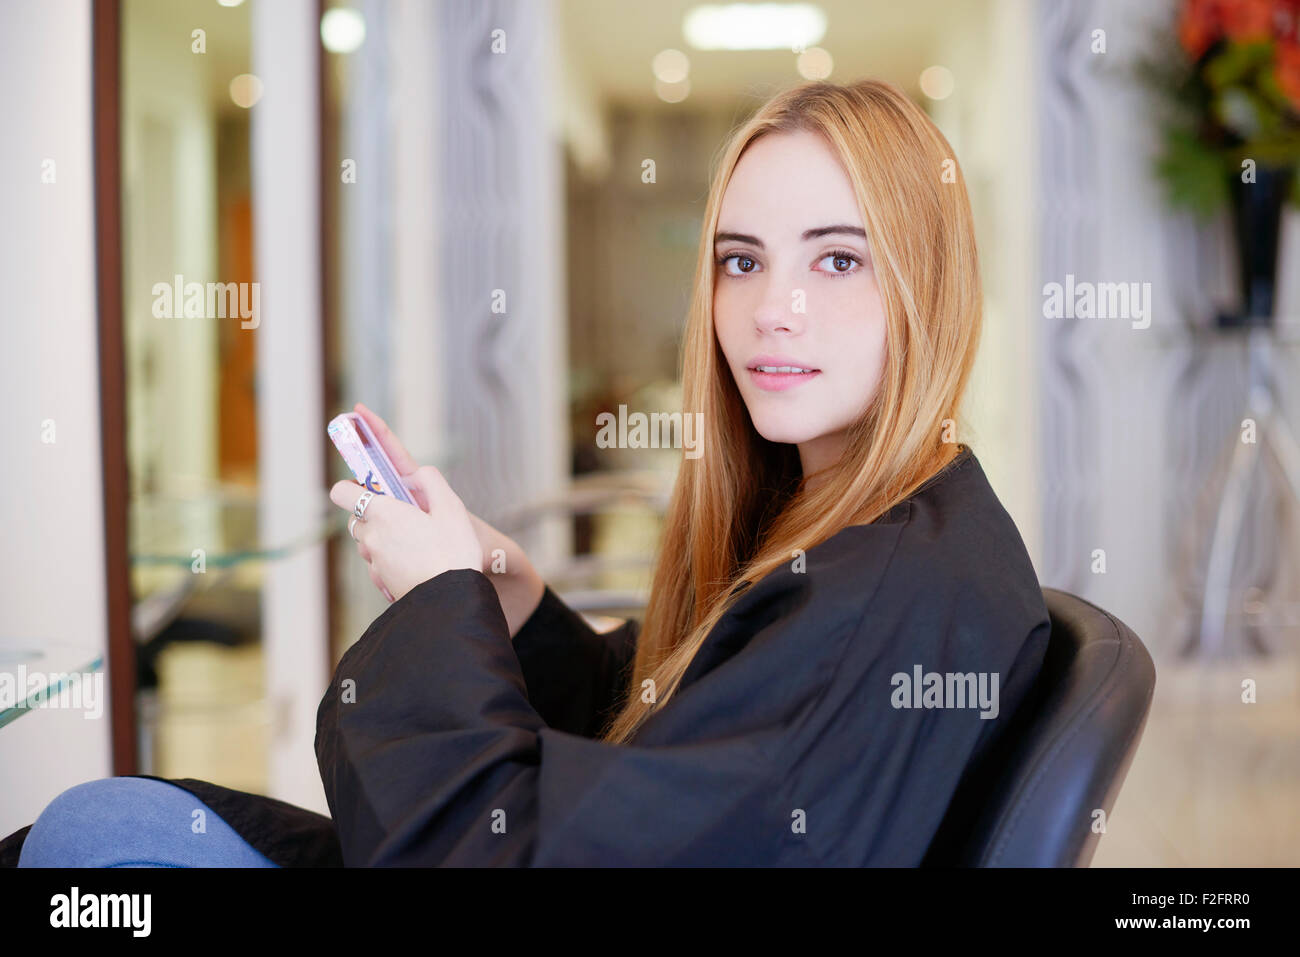 Portrait woman texting with cell phone in hair salon Stock Photo